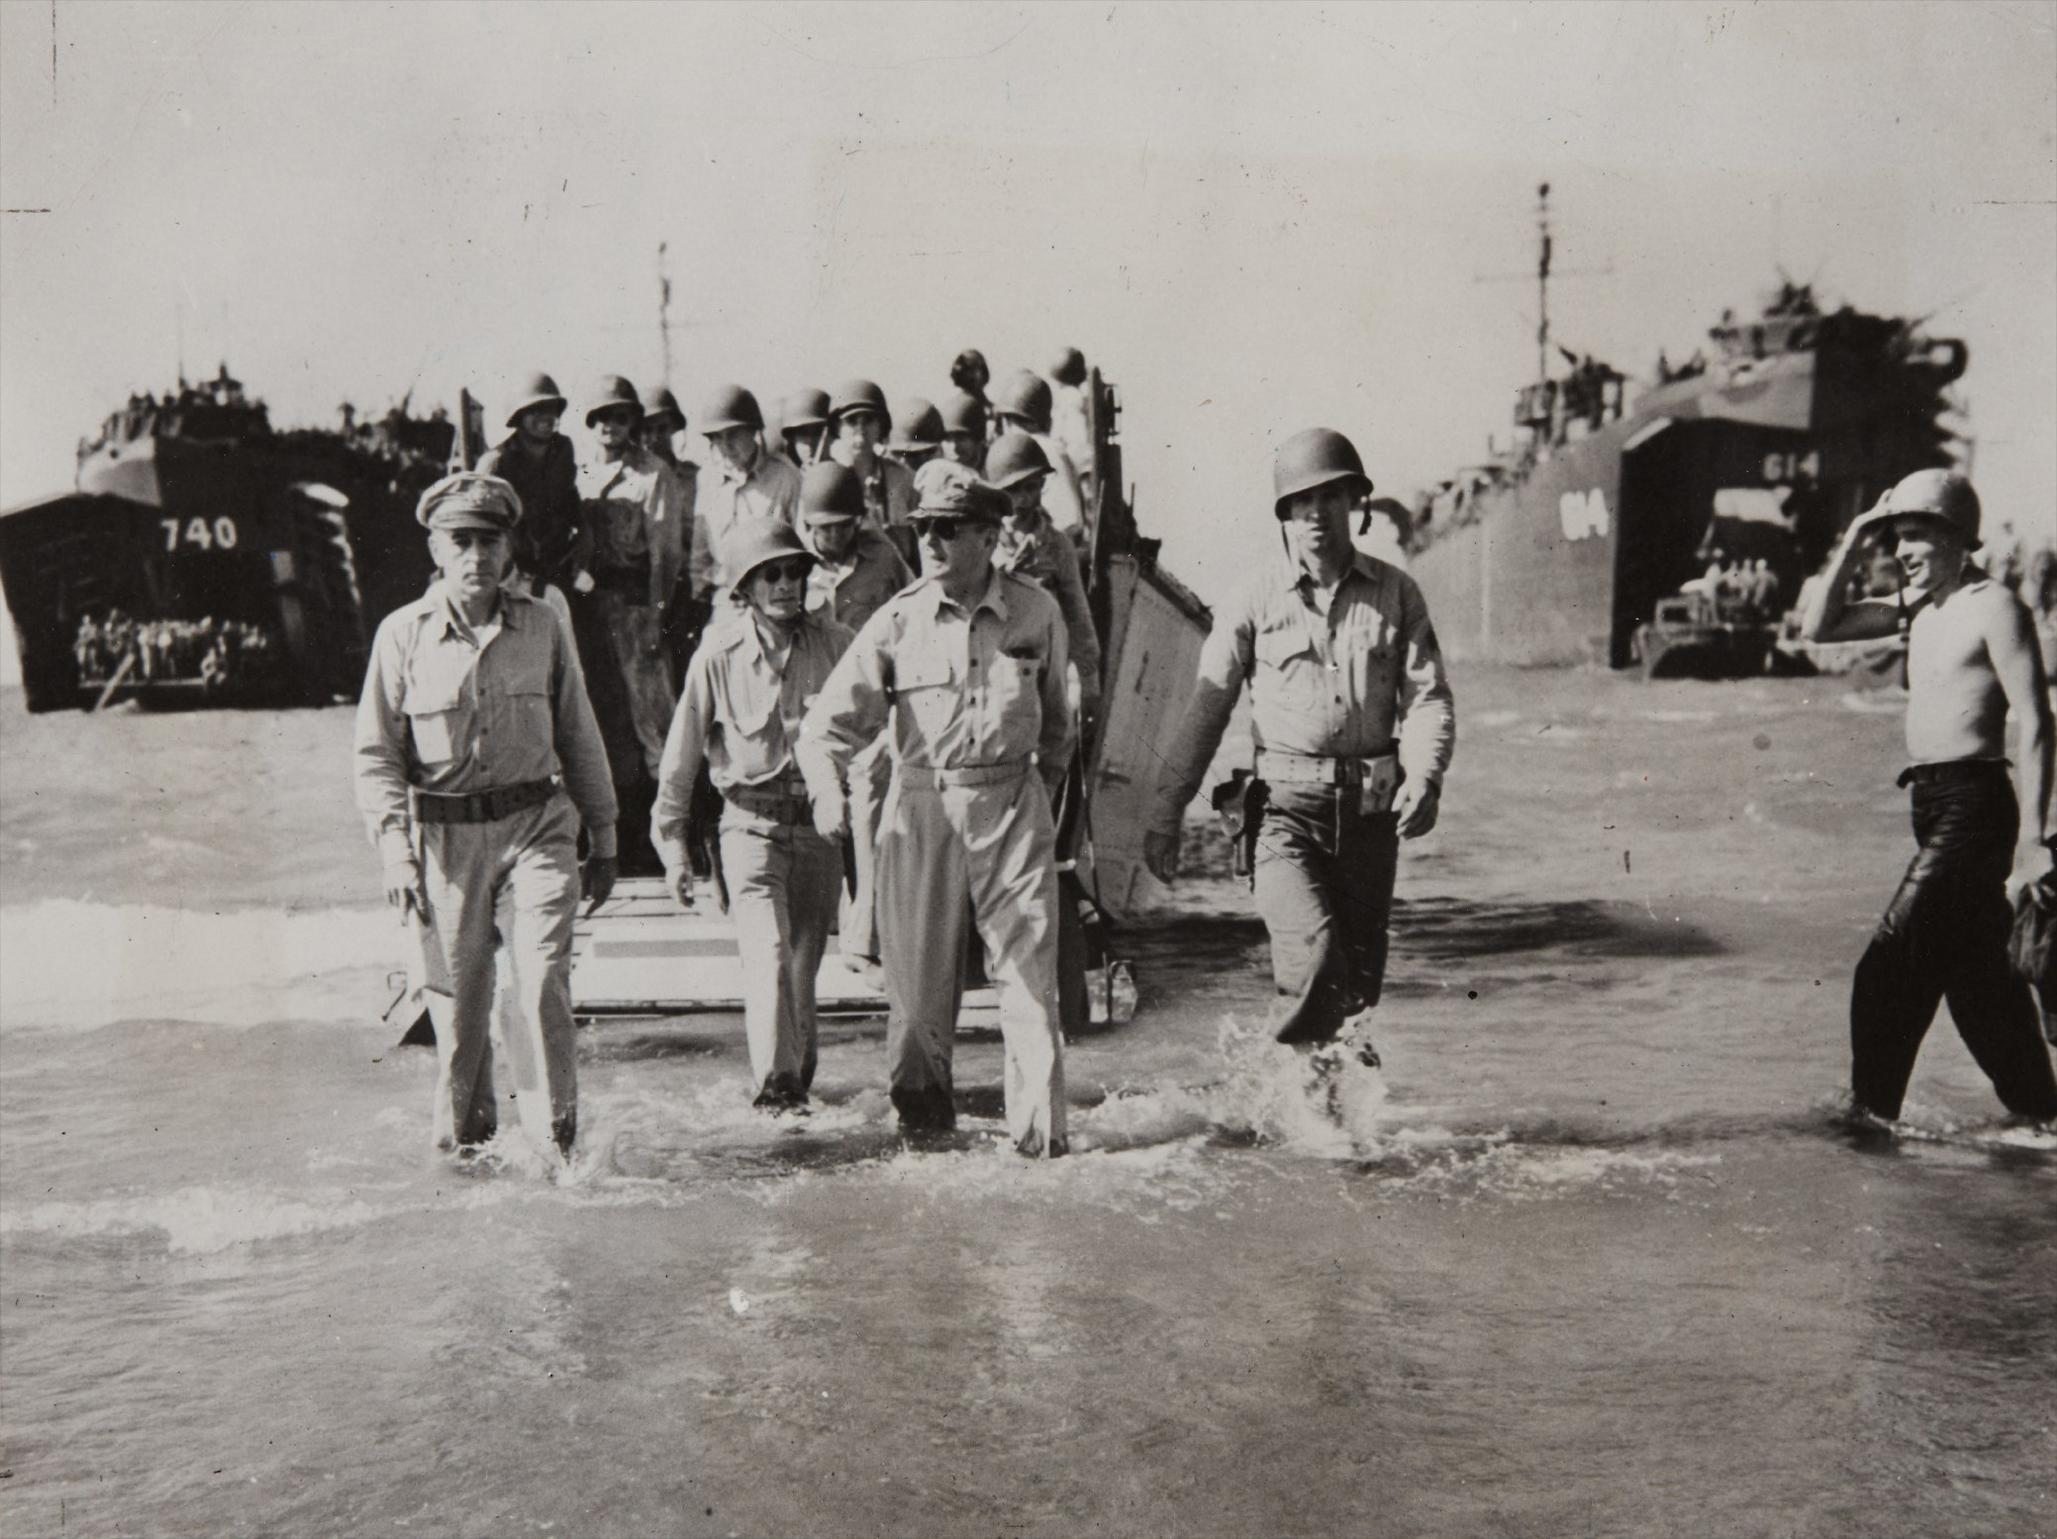 Carl Mydans - Gen. Douglas Macarthur With Gen. Richard Sutherland And Col. Lloyd Lehrbas Walks Through The Surf To The Beach At Lingayen, Luzon, The Philippines-1945